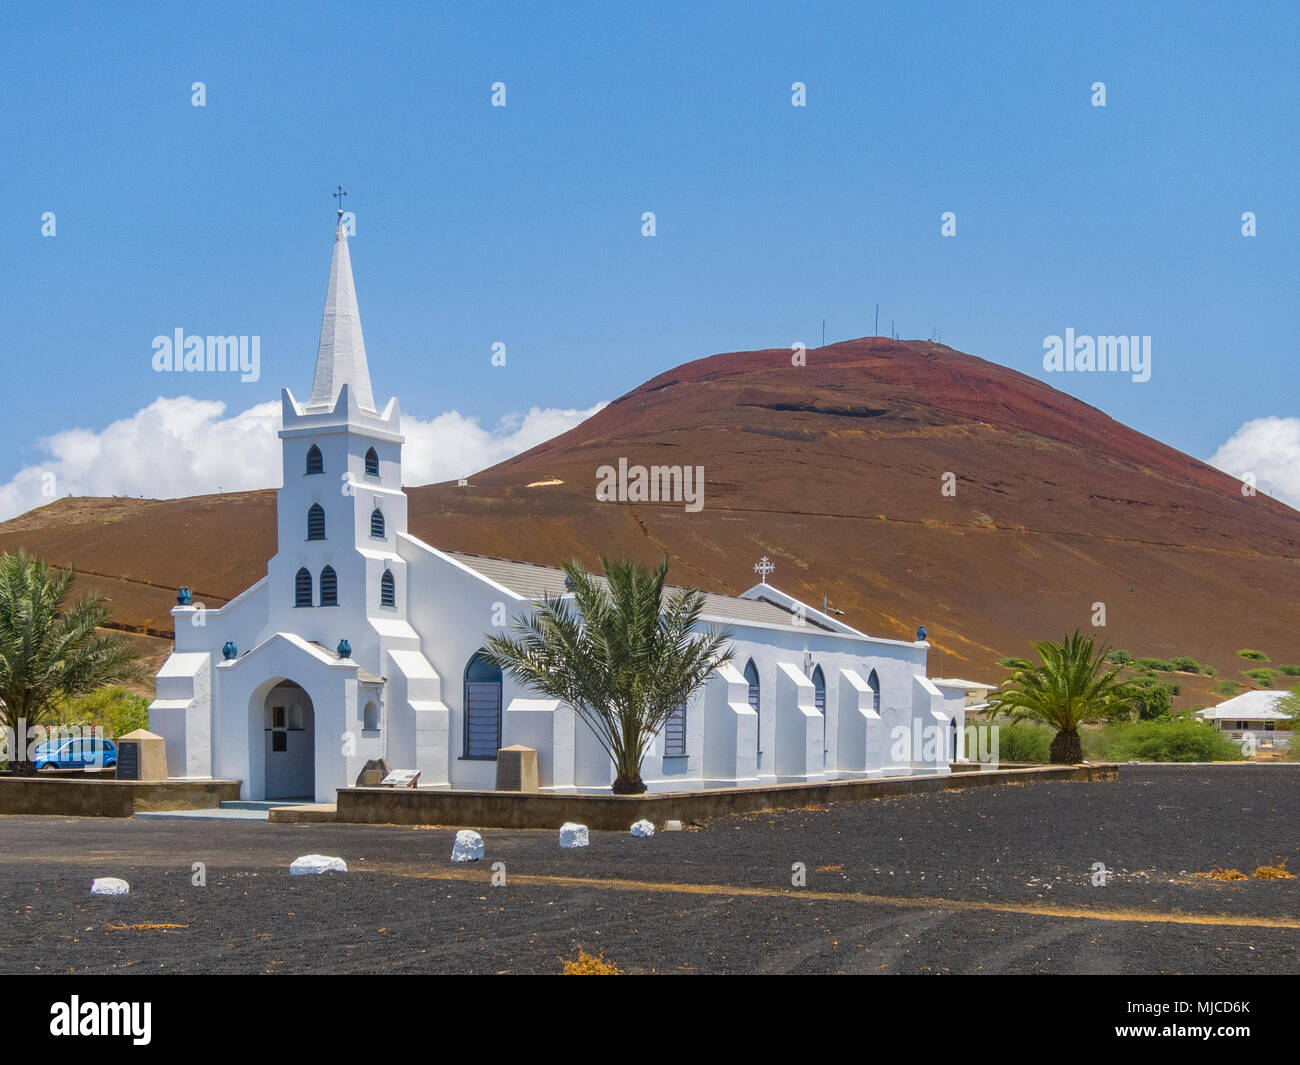 ascencion, a remote little Island in the middle of the atlantic ocean - Stock Image